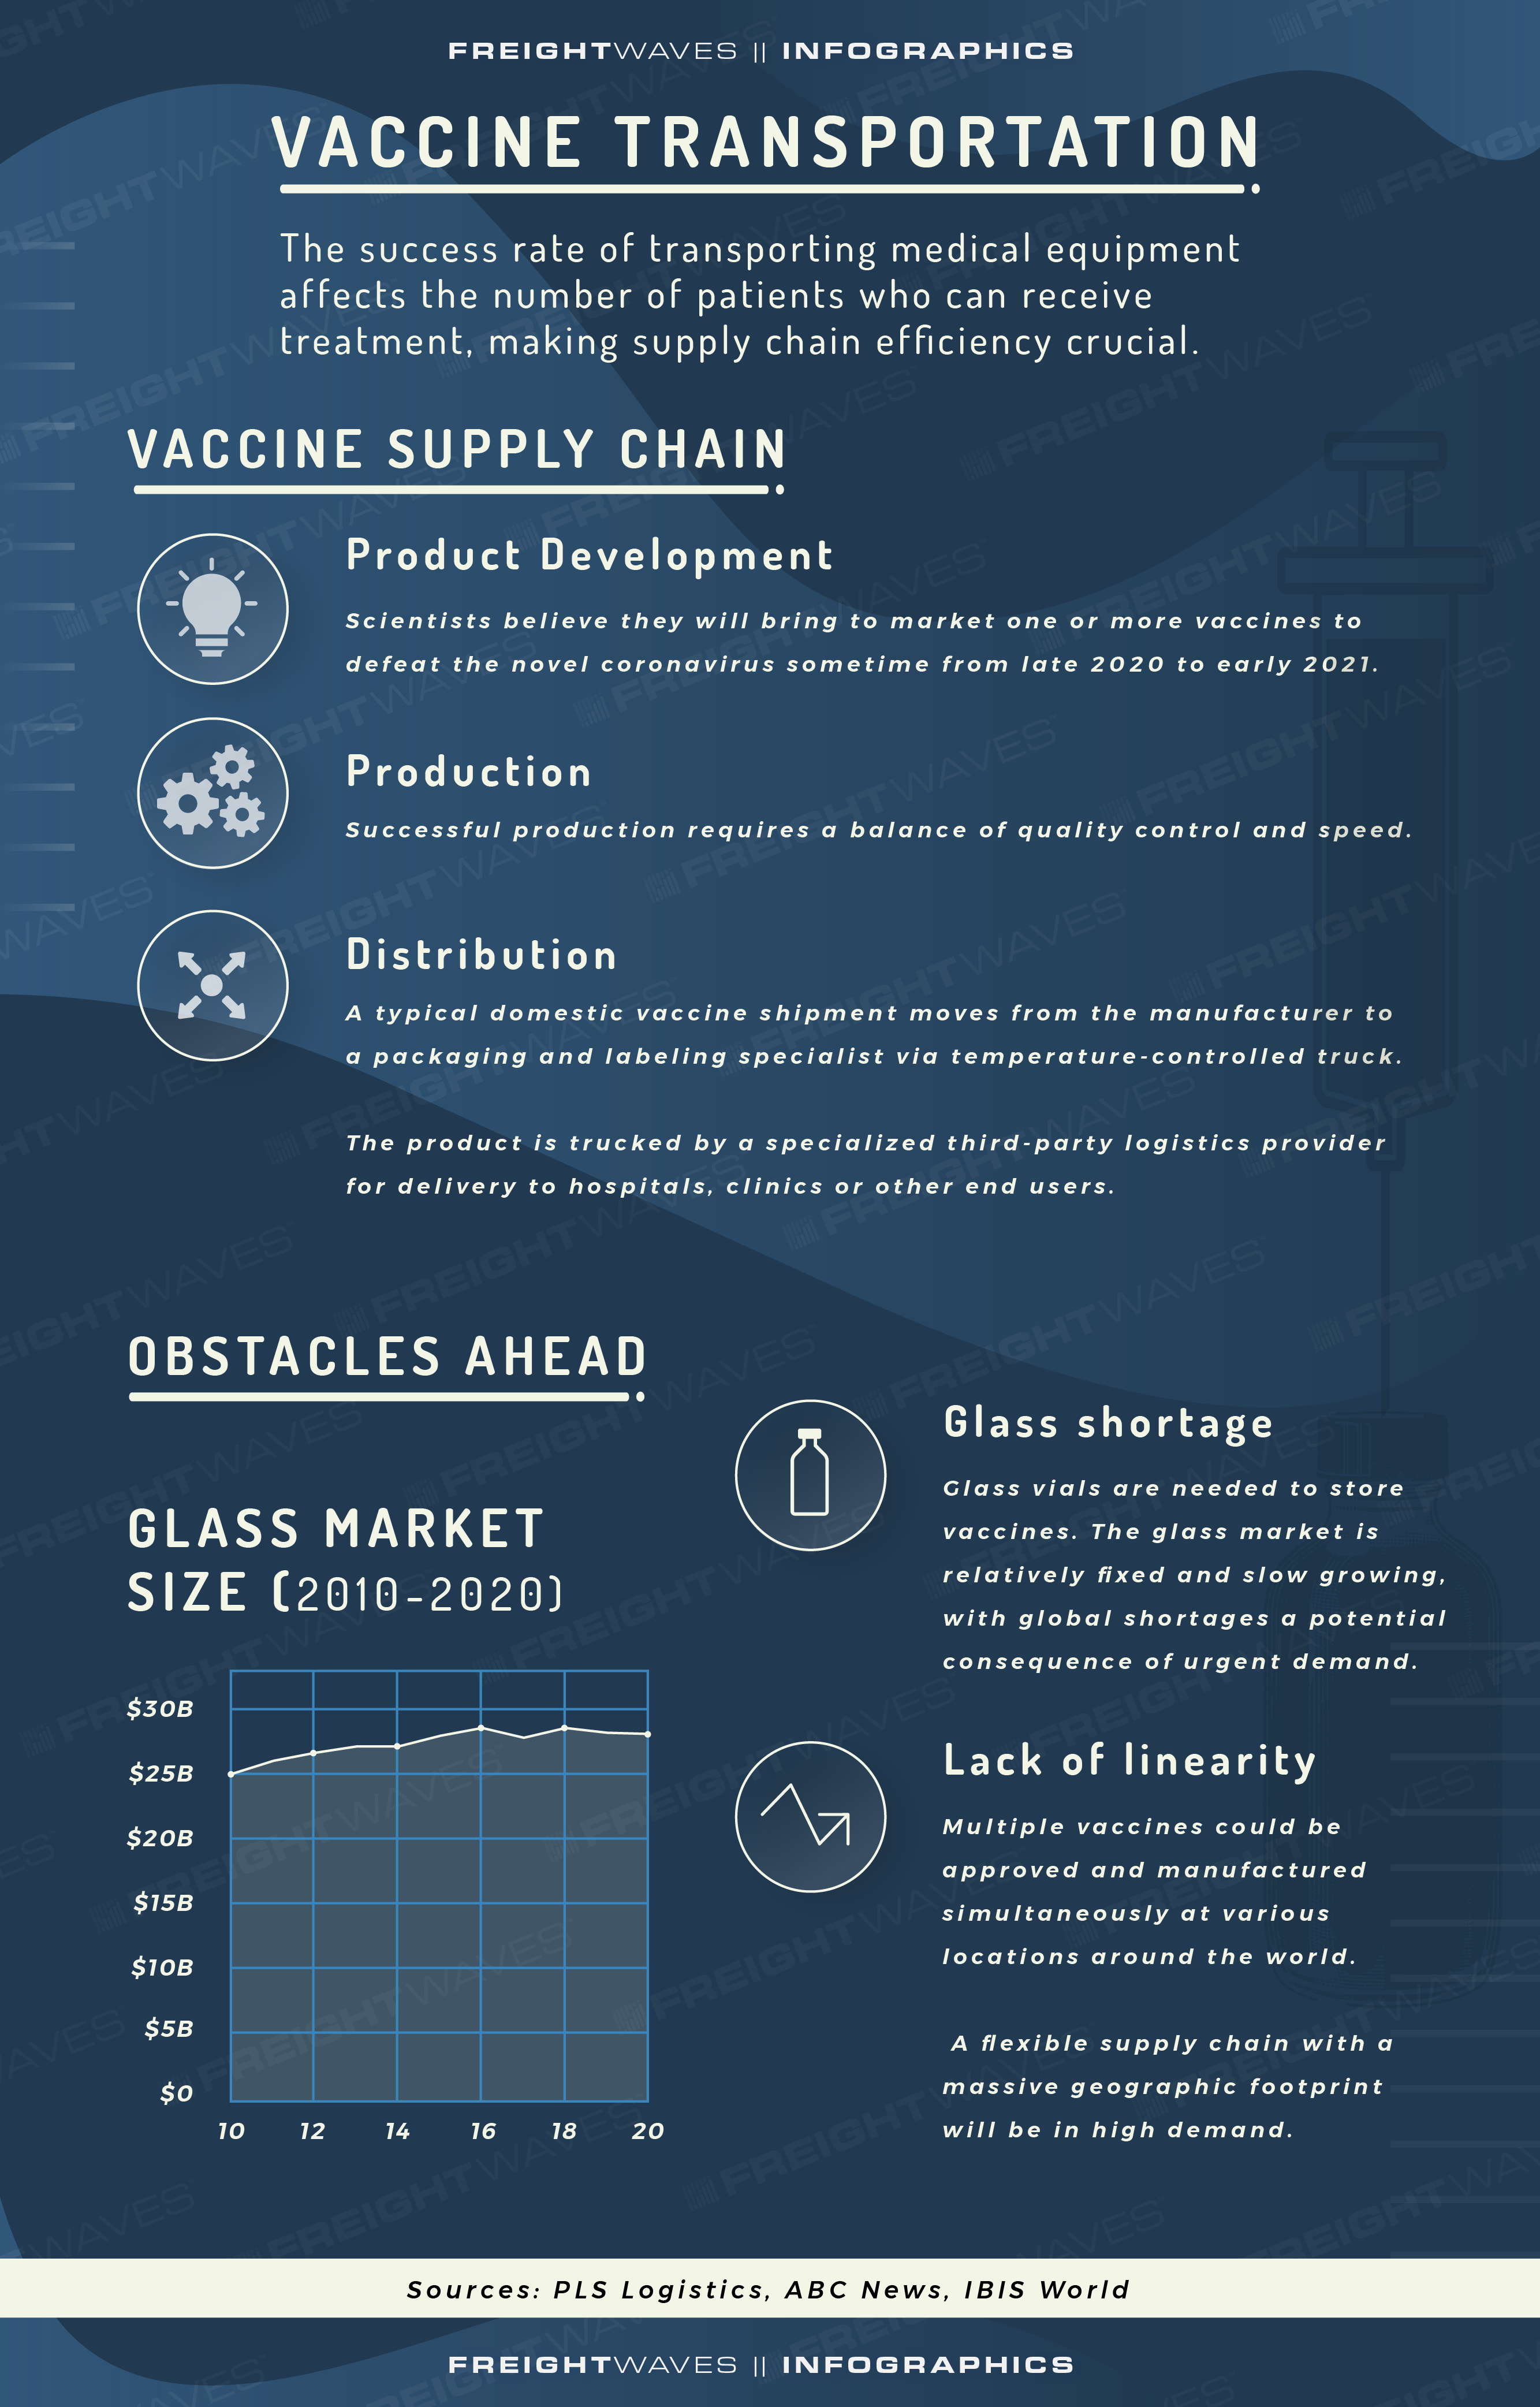 FreightWaves infographic